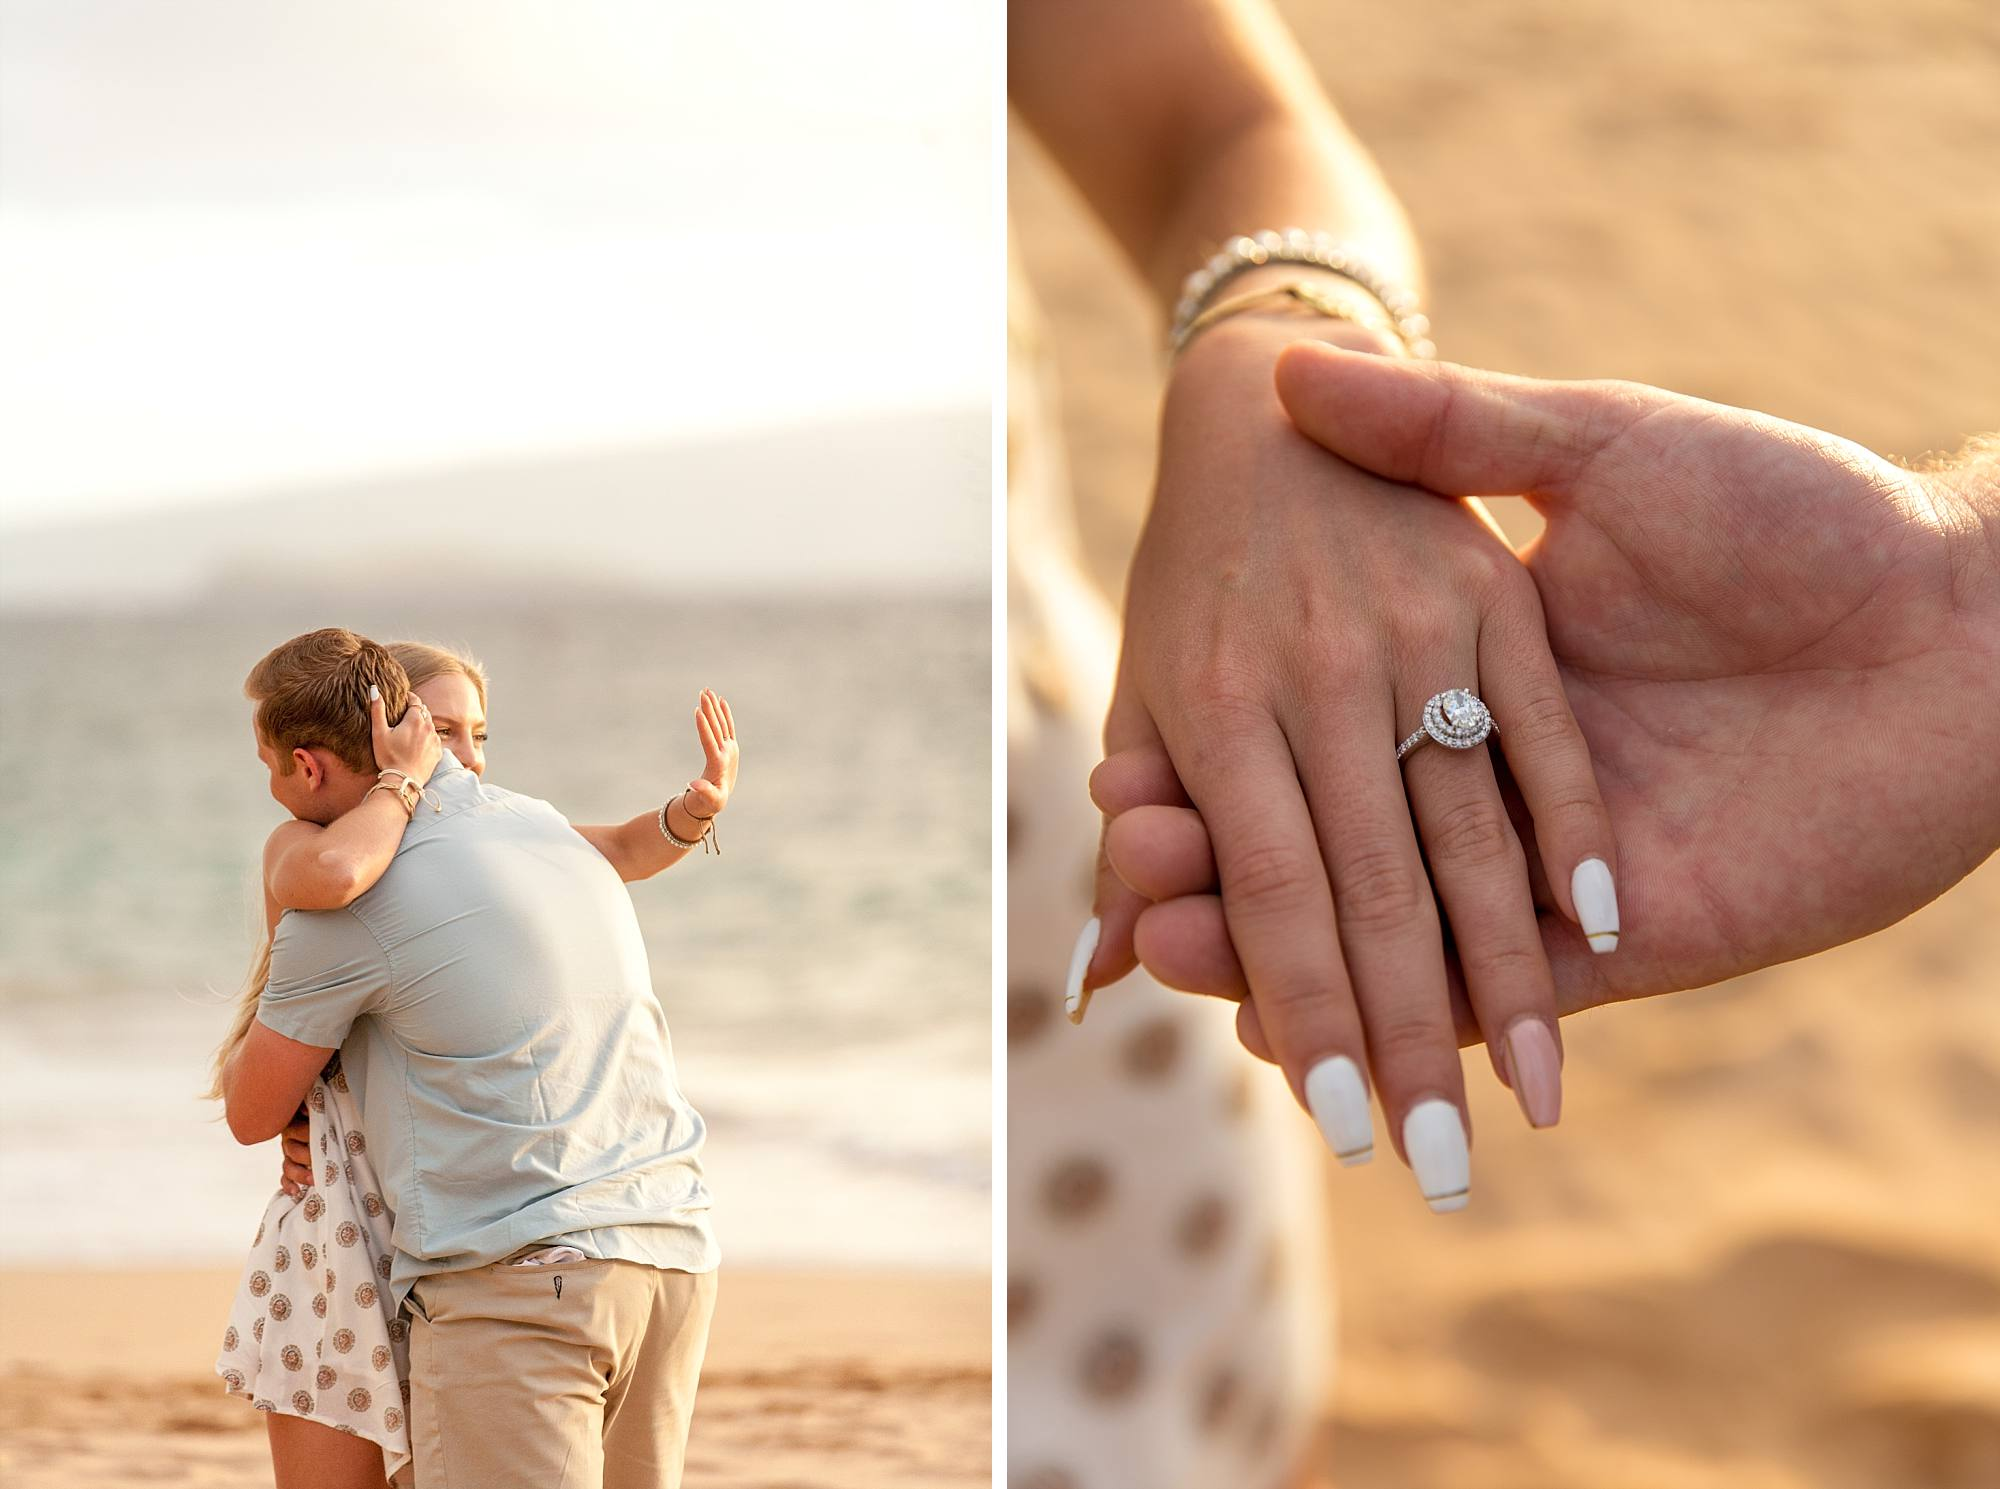 woman gazing at her engagement ring and a hand shot of her engagement ring